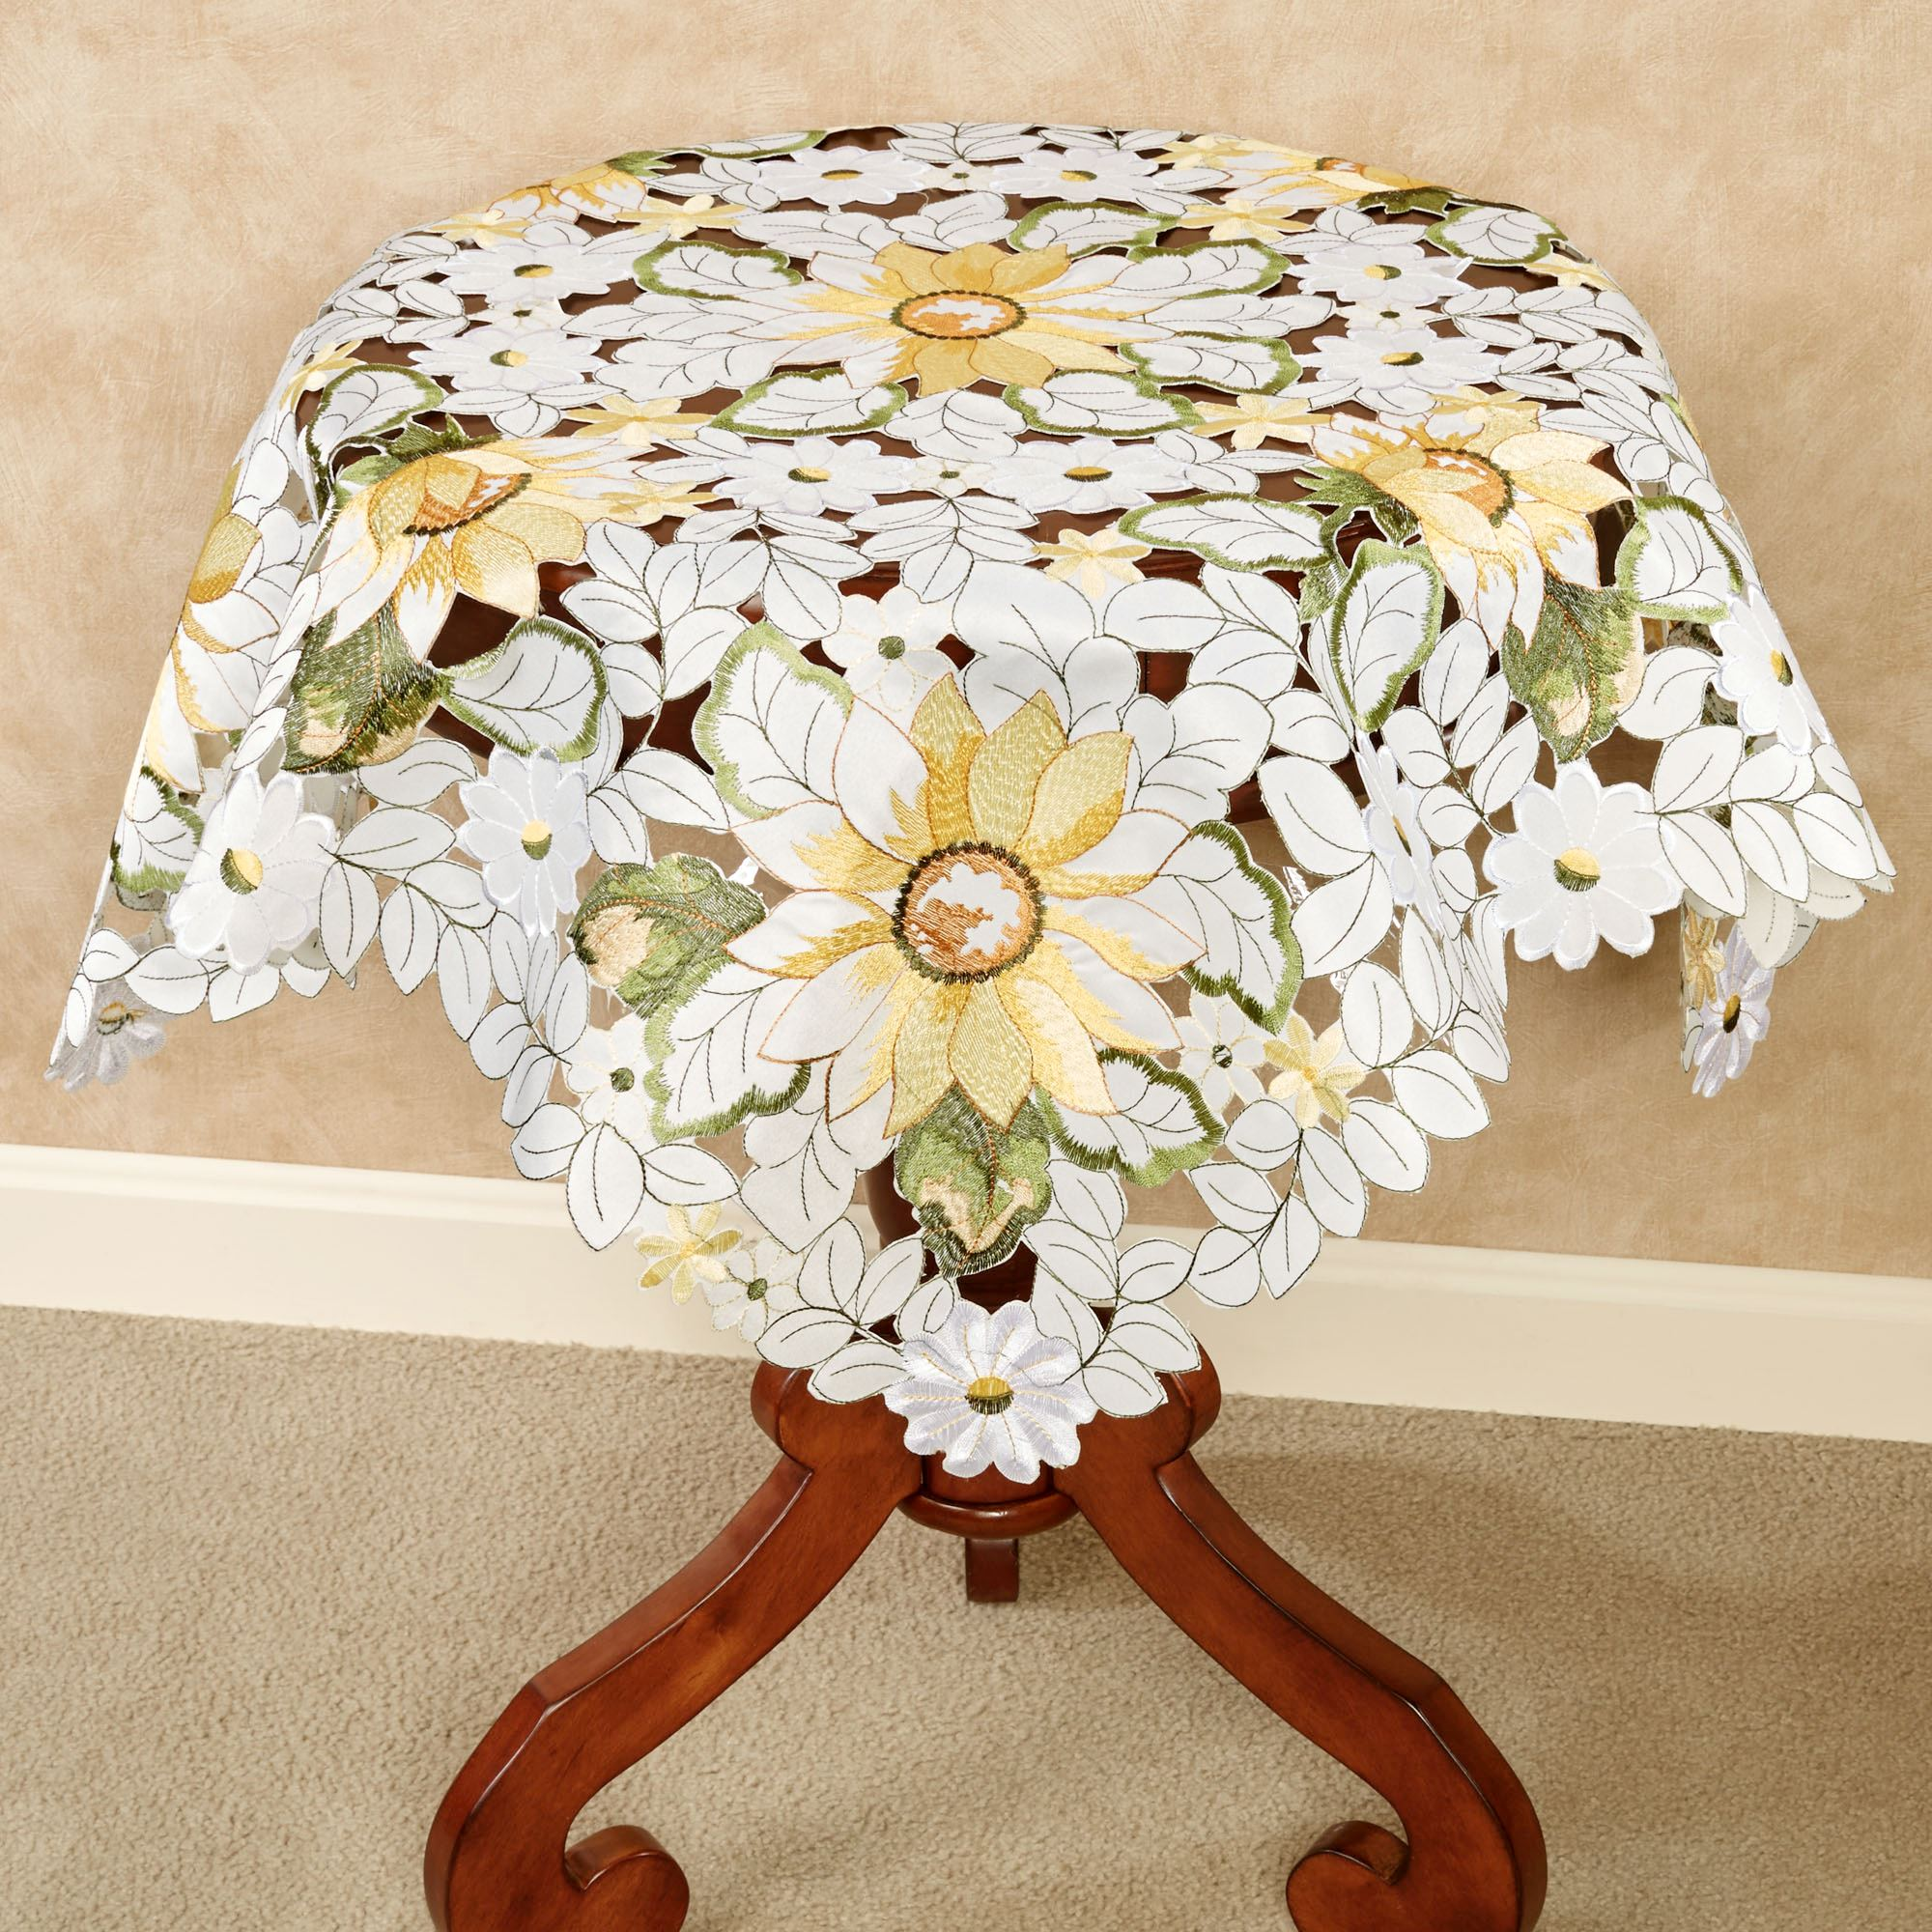 All Over Sunflowers Cutwork Table Topper